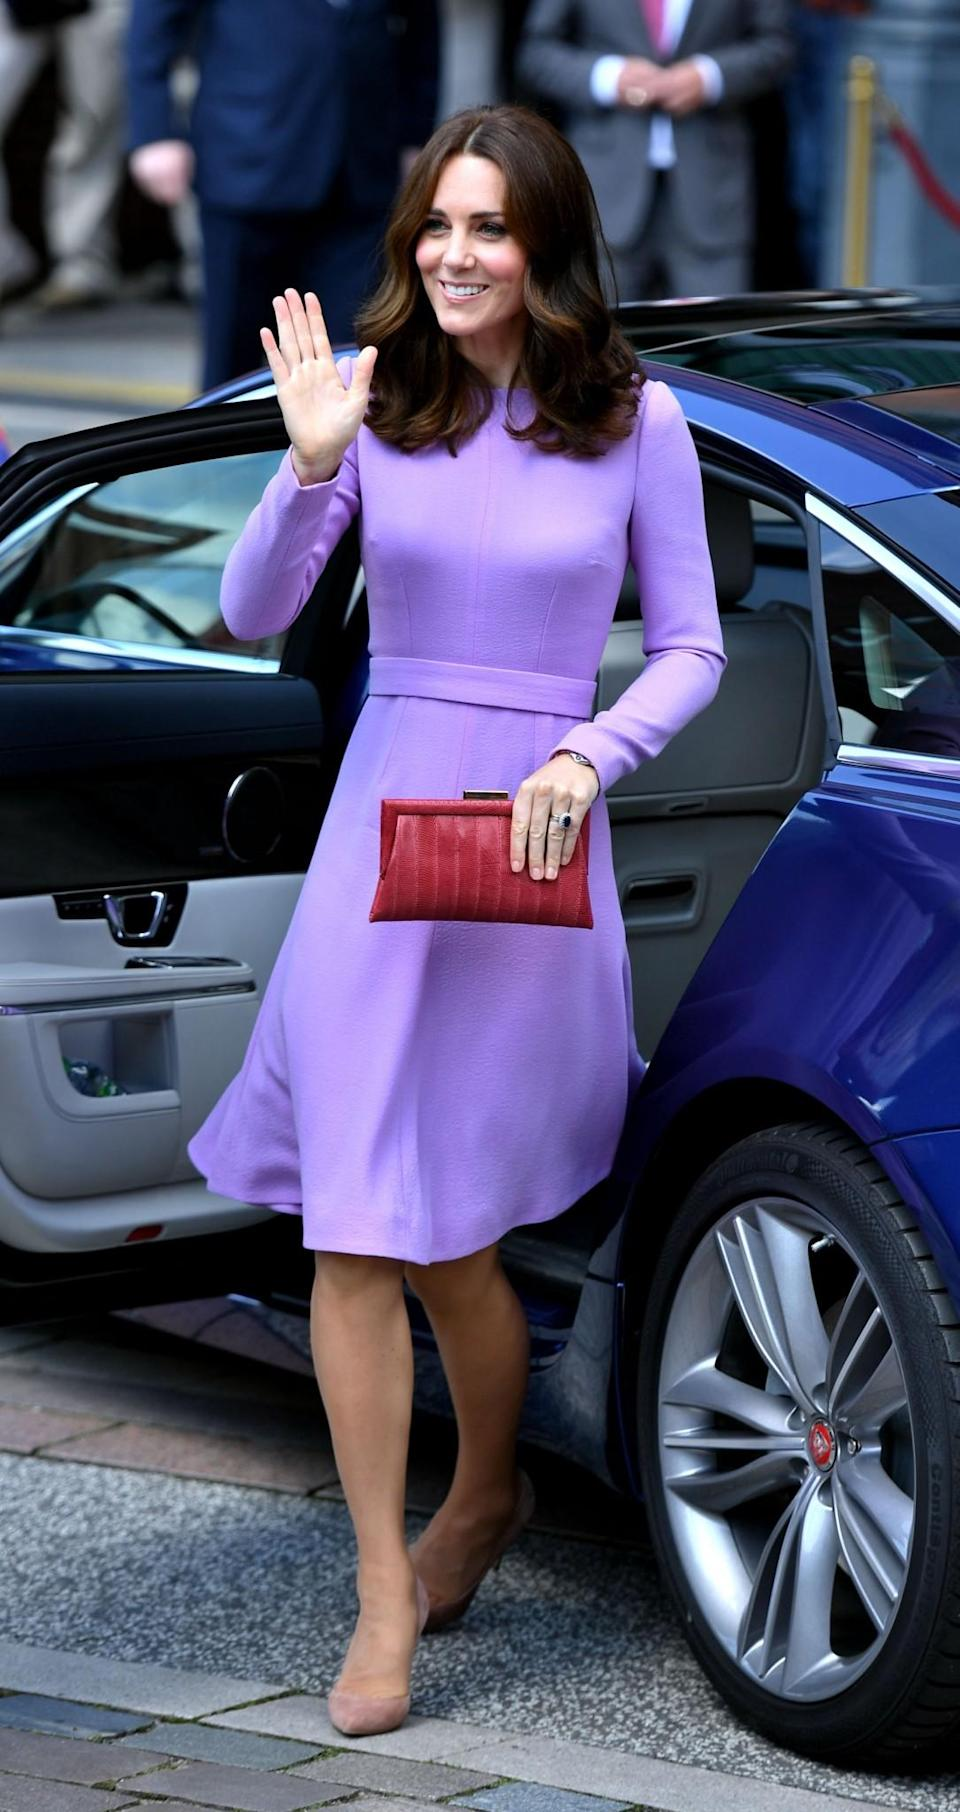 <p><b>For her final day of engagements in Germany, the Duchess wore a long-sleeved lavender dress by London Fashion Week designer Emilia Wickstead. <br><em>[Photo: PA]</em> </b></p>